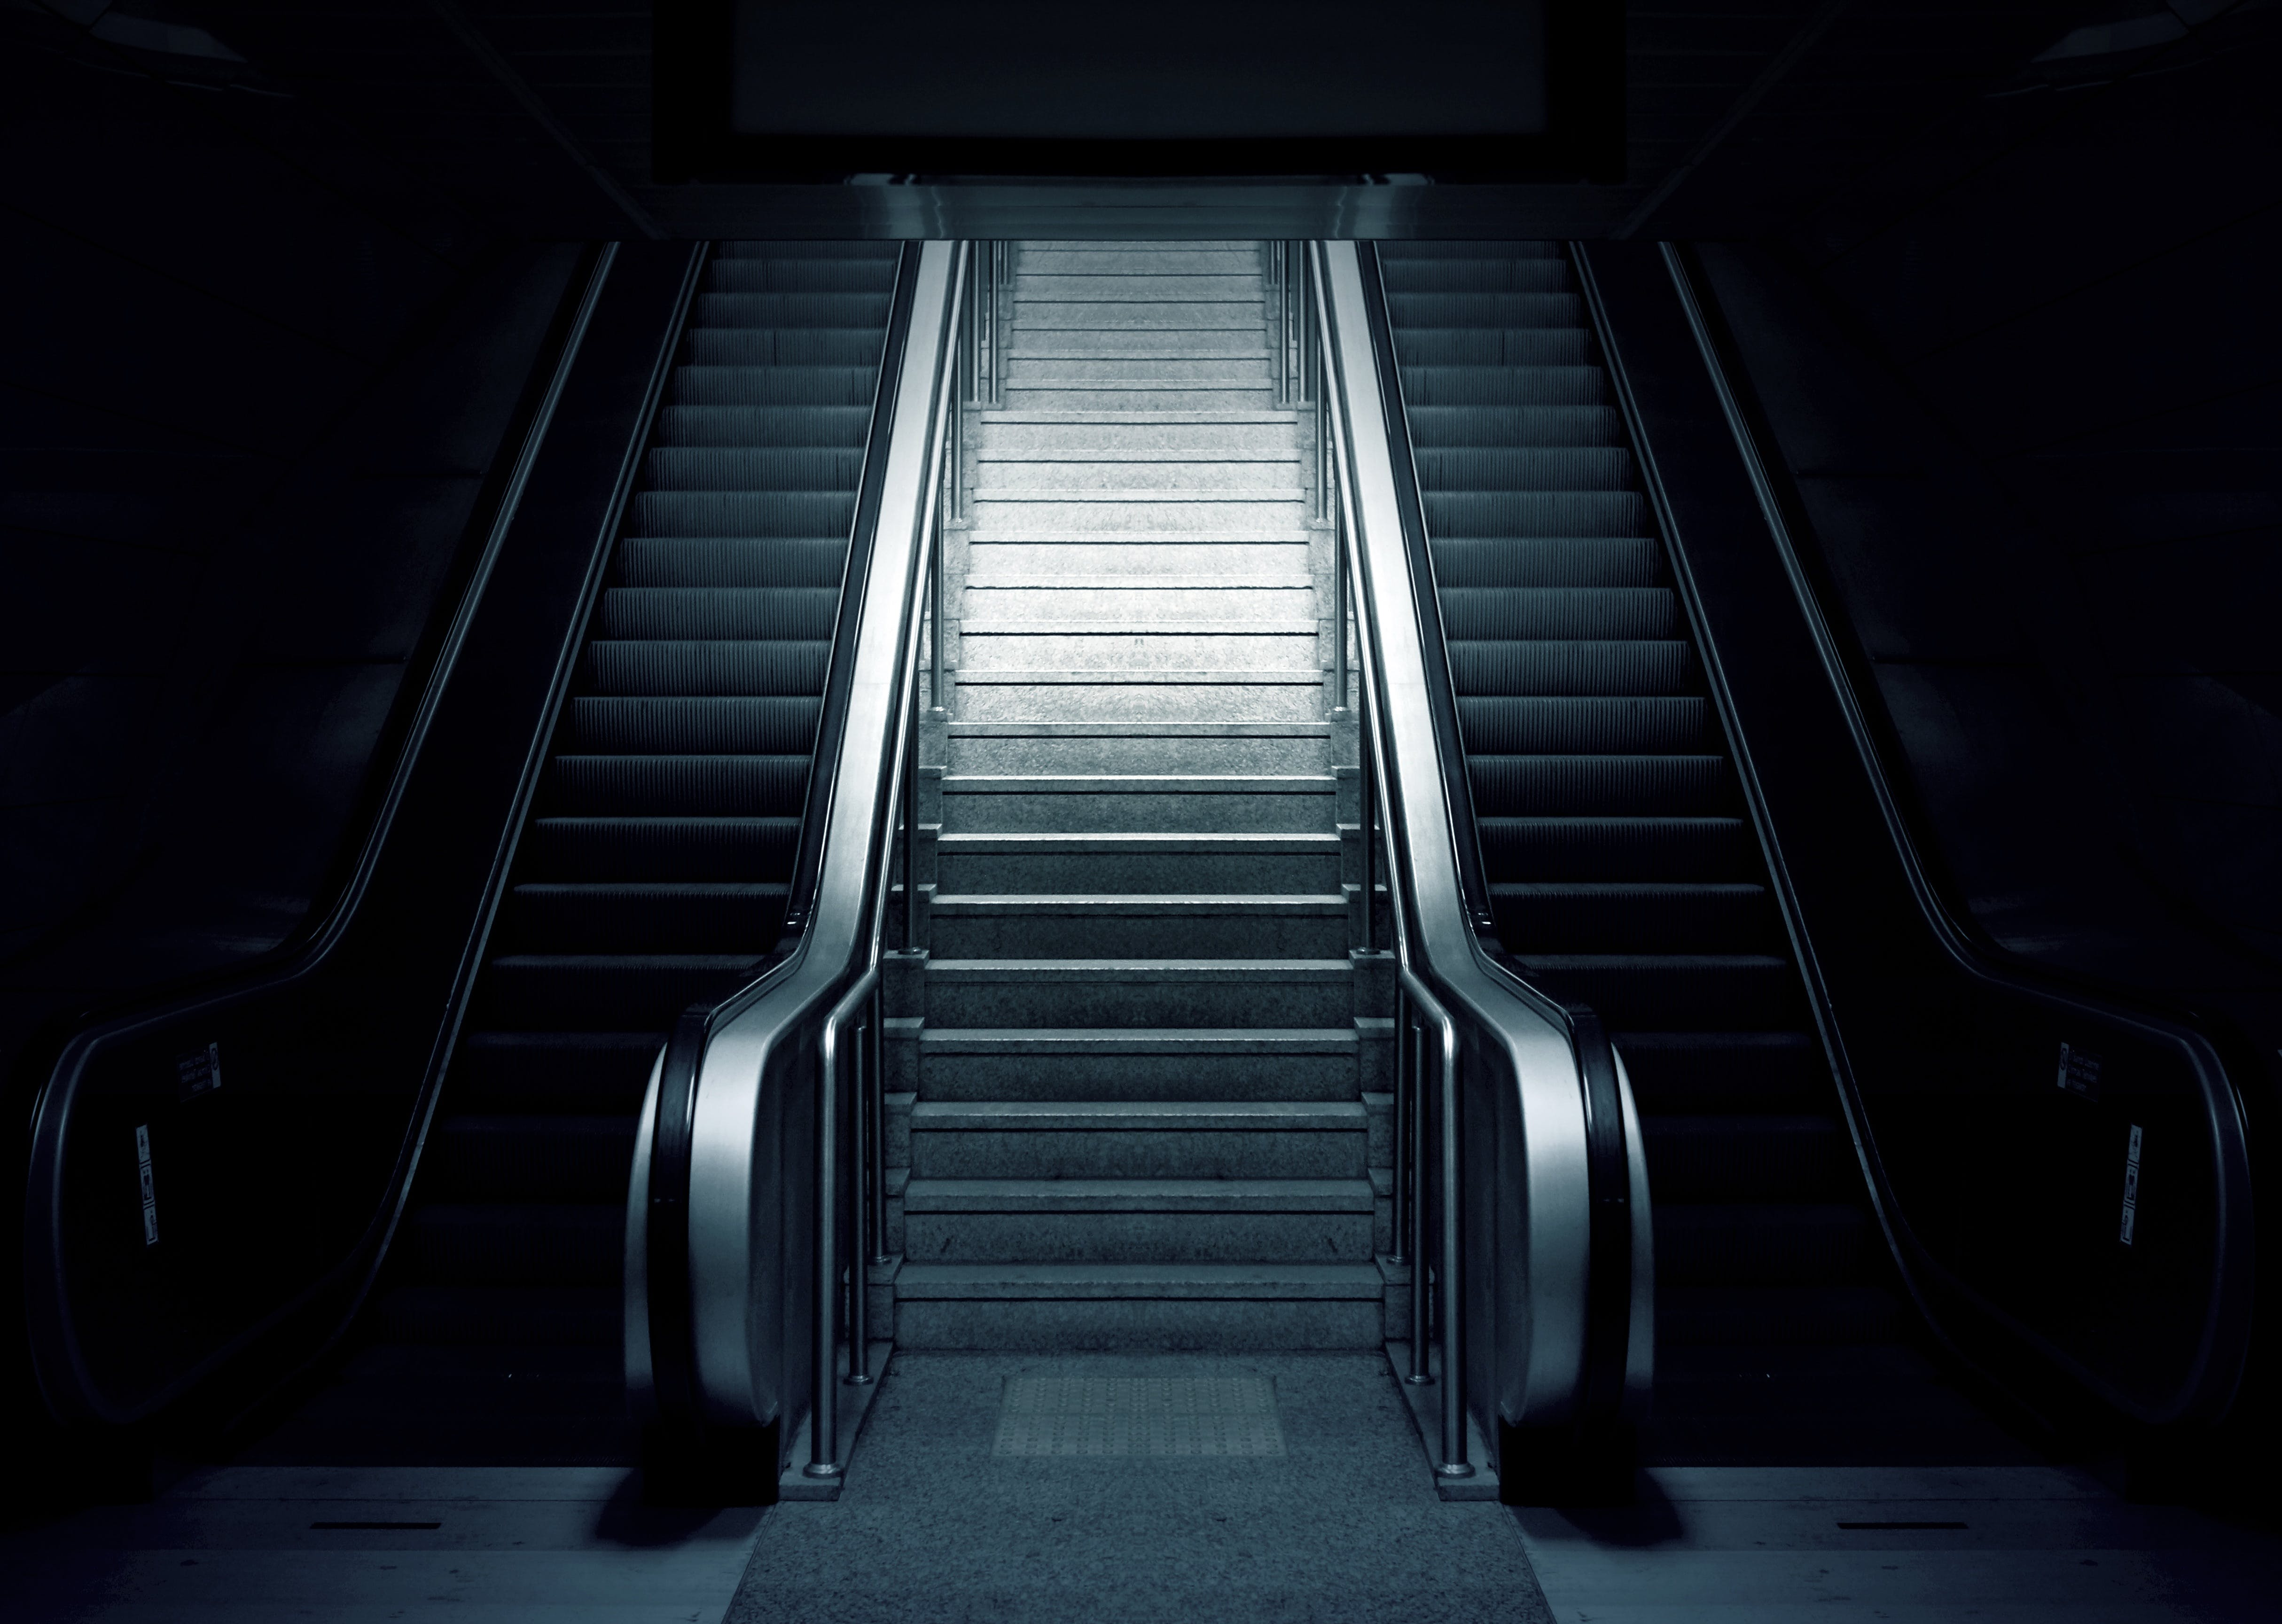 black-and-white, dark, escalator